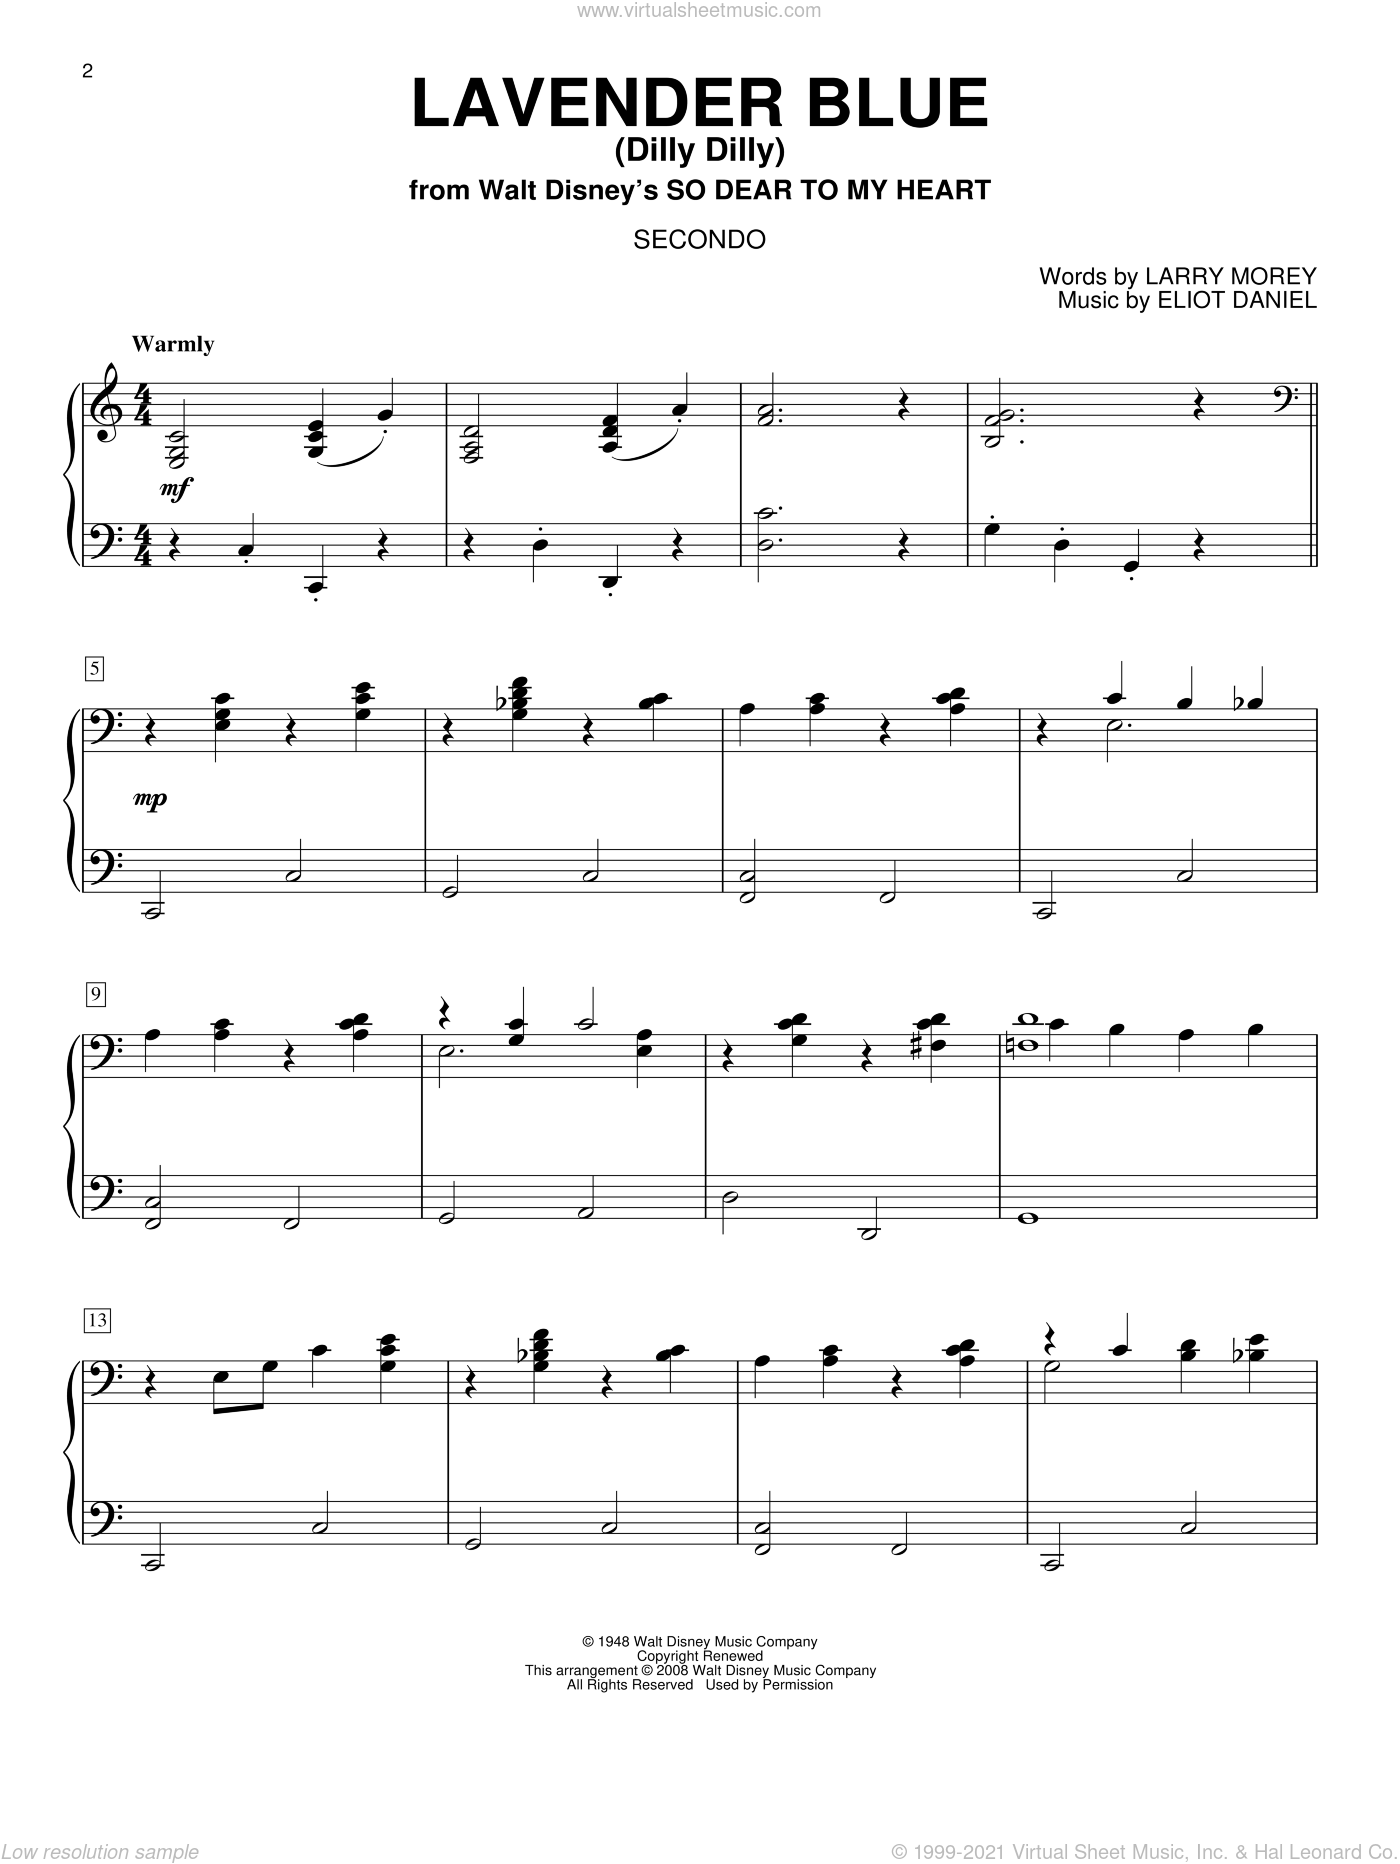 Lavender Blue (Dilly Dilly) sheet music for piano four hands (duets) by Larry Morey